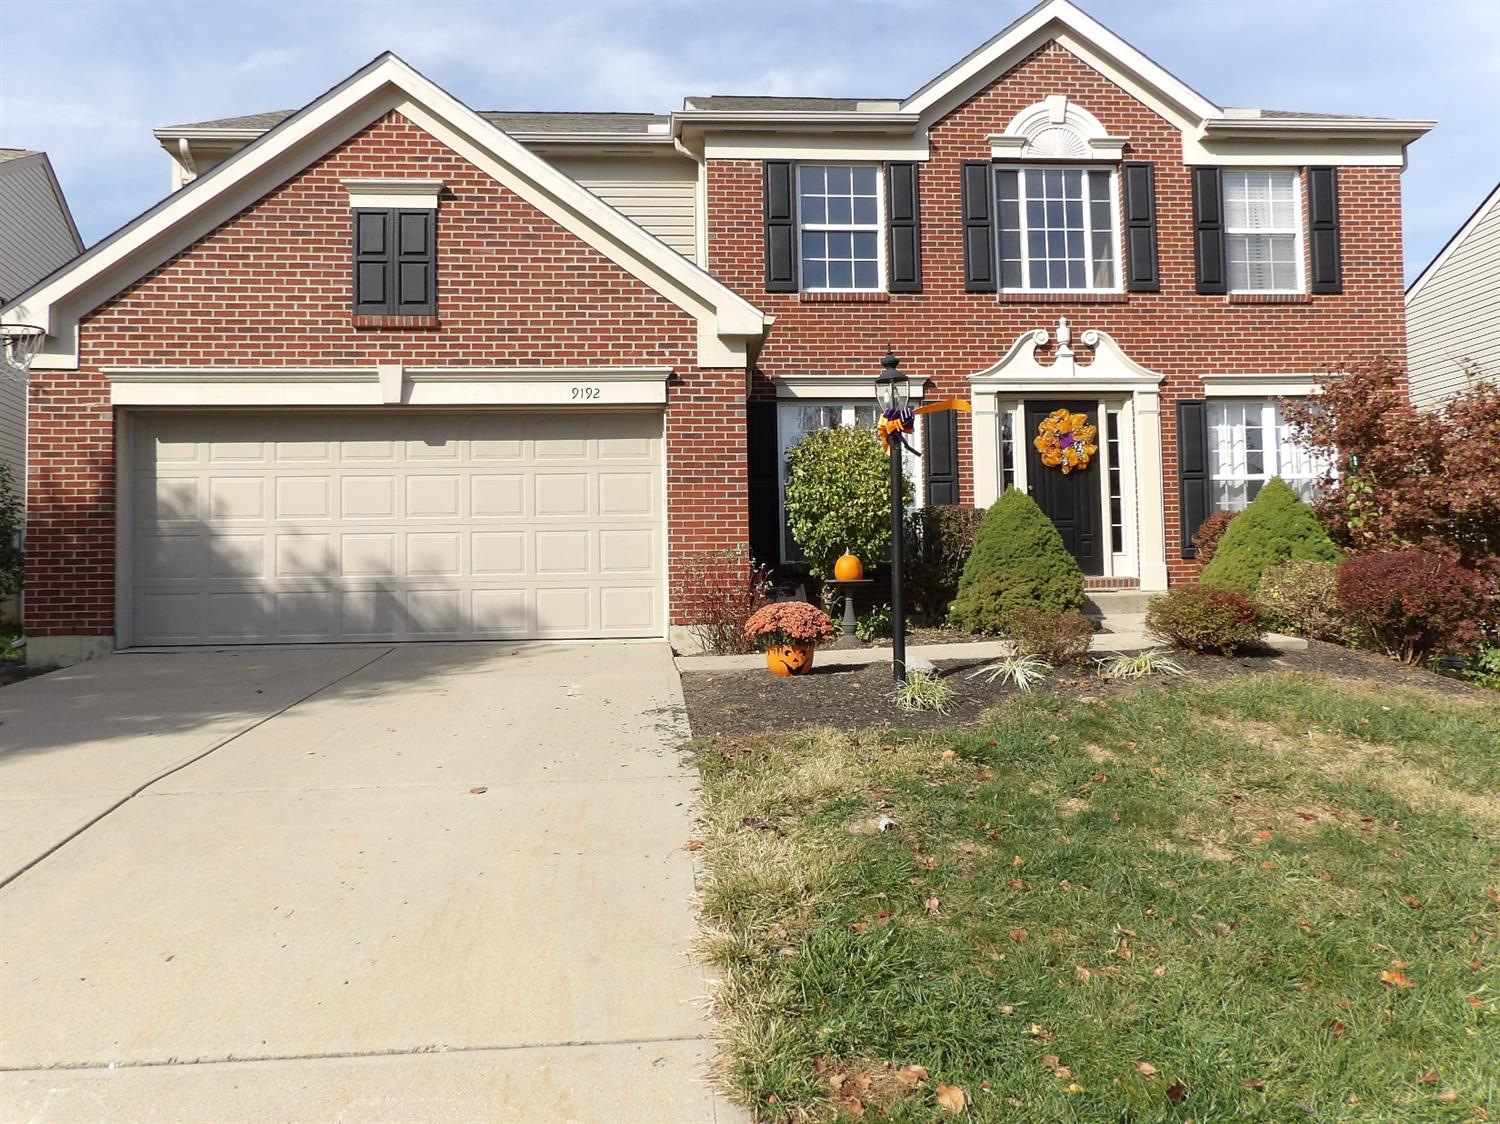 Photo 1 for 9192 Belvedere Ct Florence, KY 41042